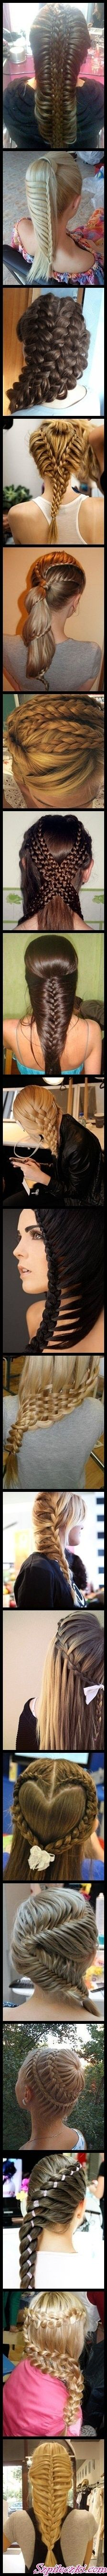 Some of these Are cool wish I could braid any of these!